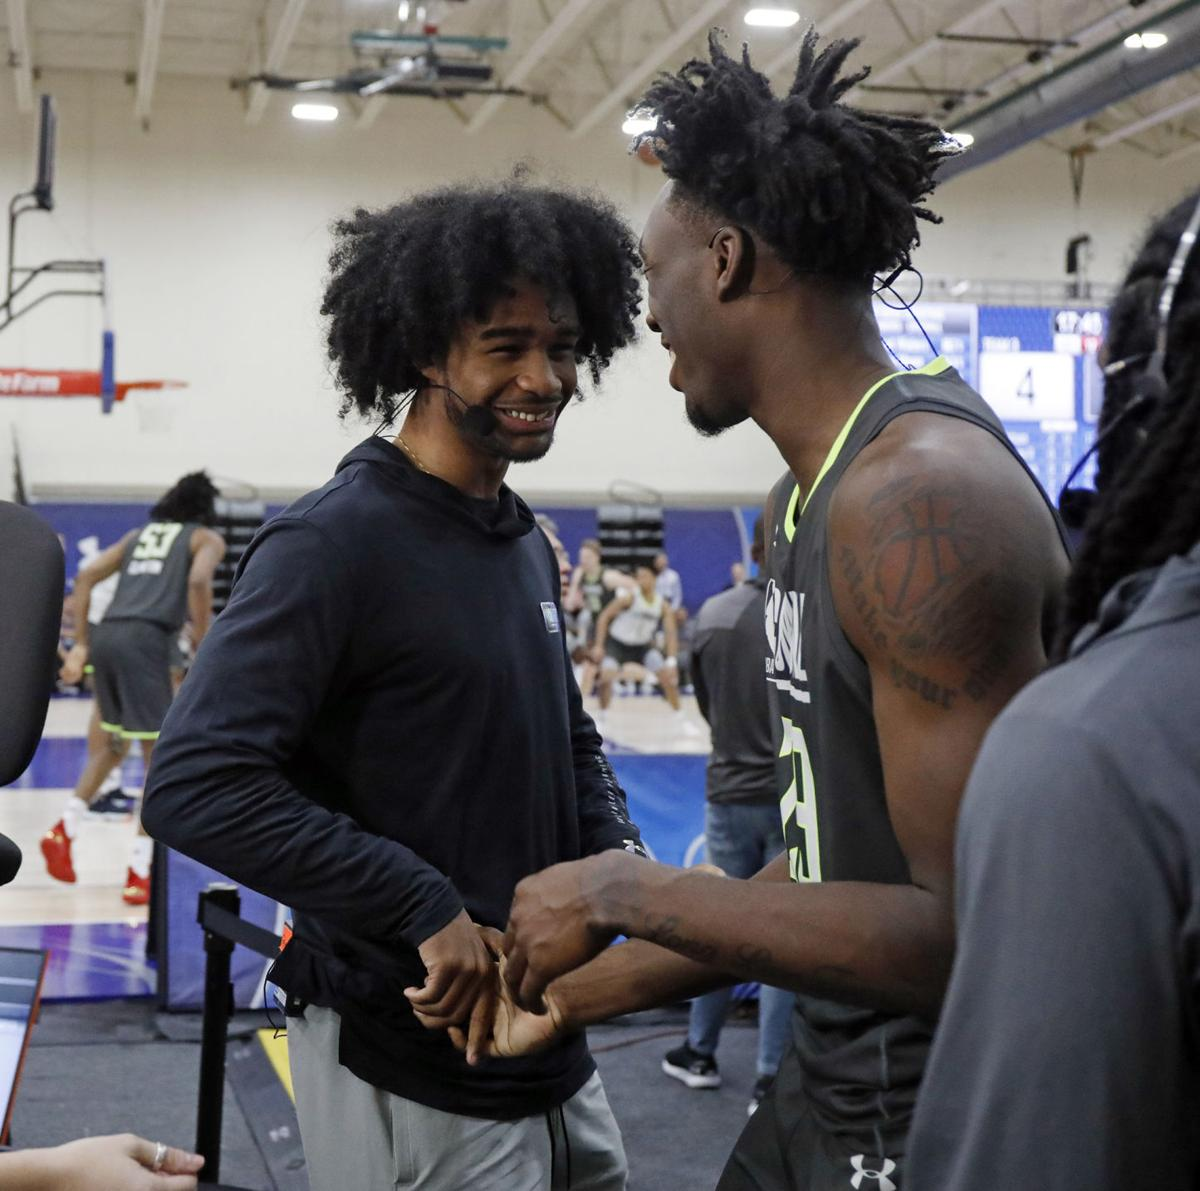 North Carolina teammates Coby White and Nassir Little greet each other during the NBA draft combine on Thursday, May 16, 2019 at the Quest Multisport Complex in Chicago, Ill.